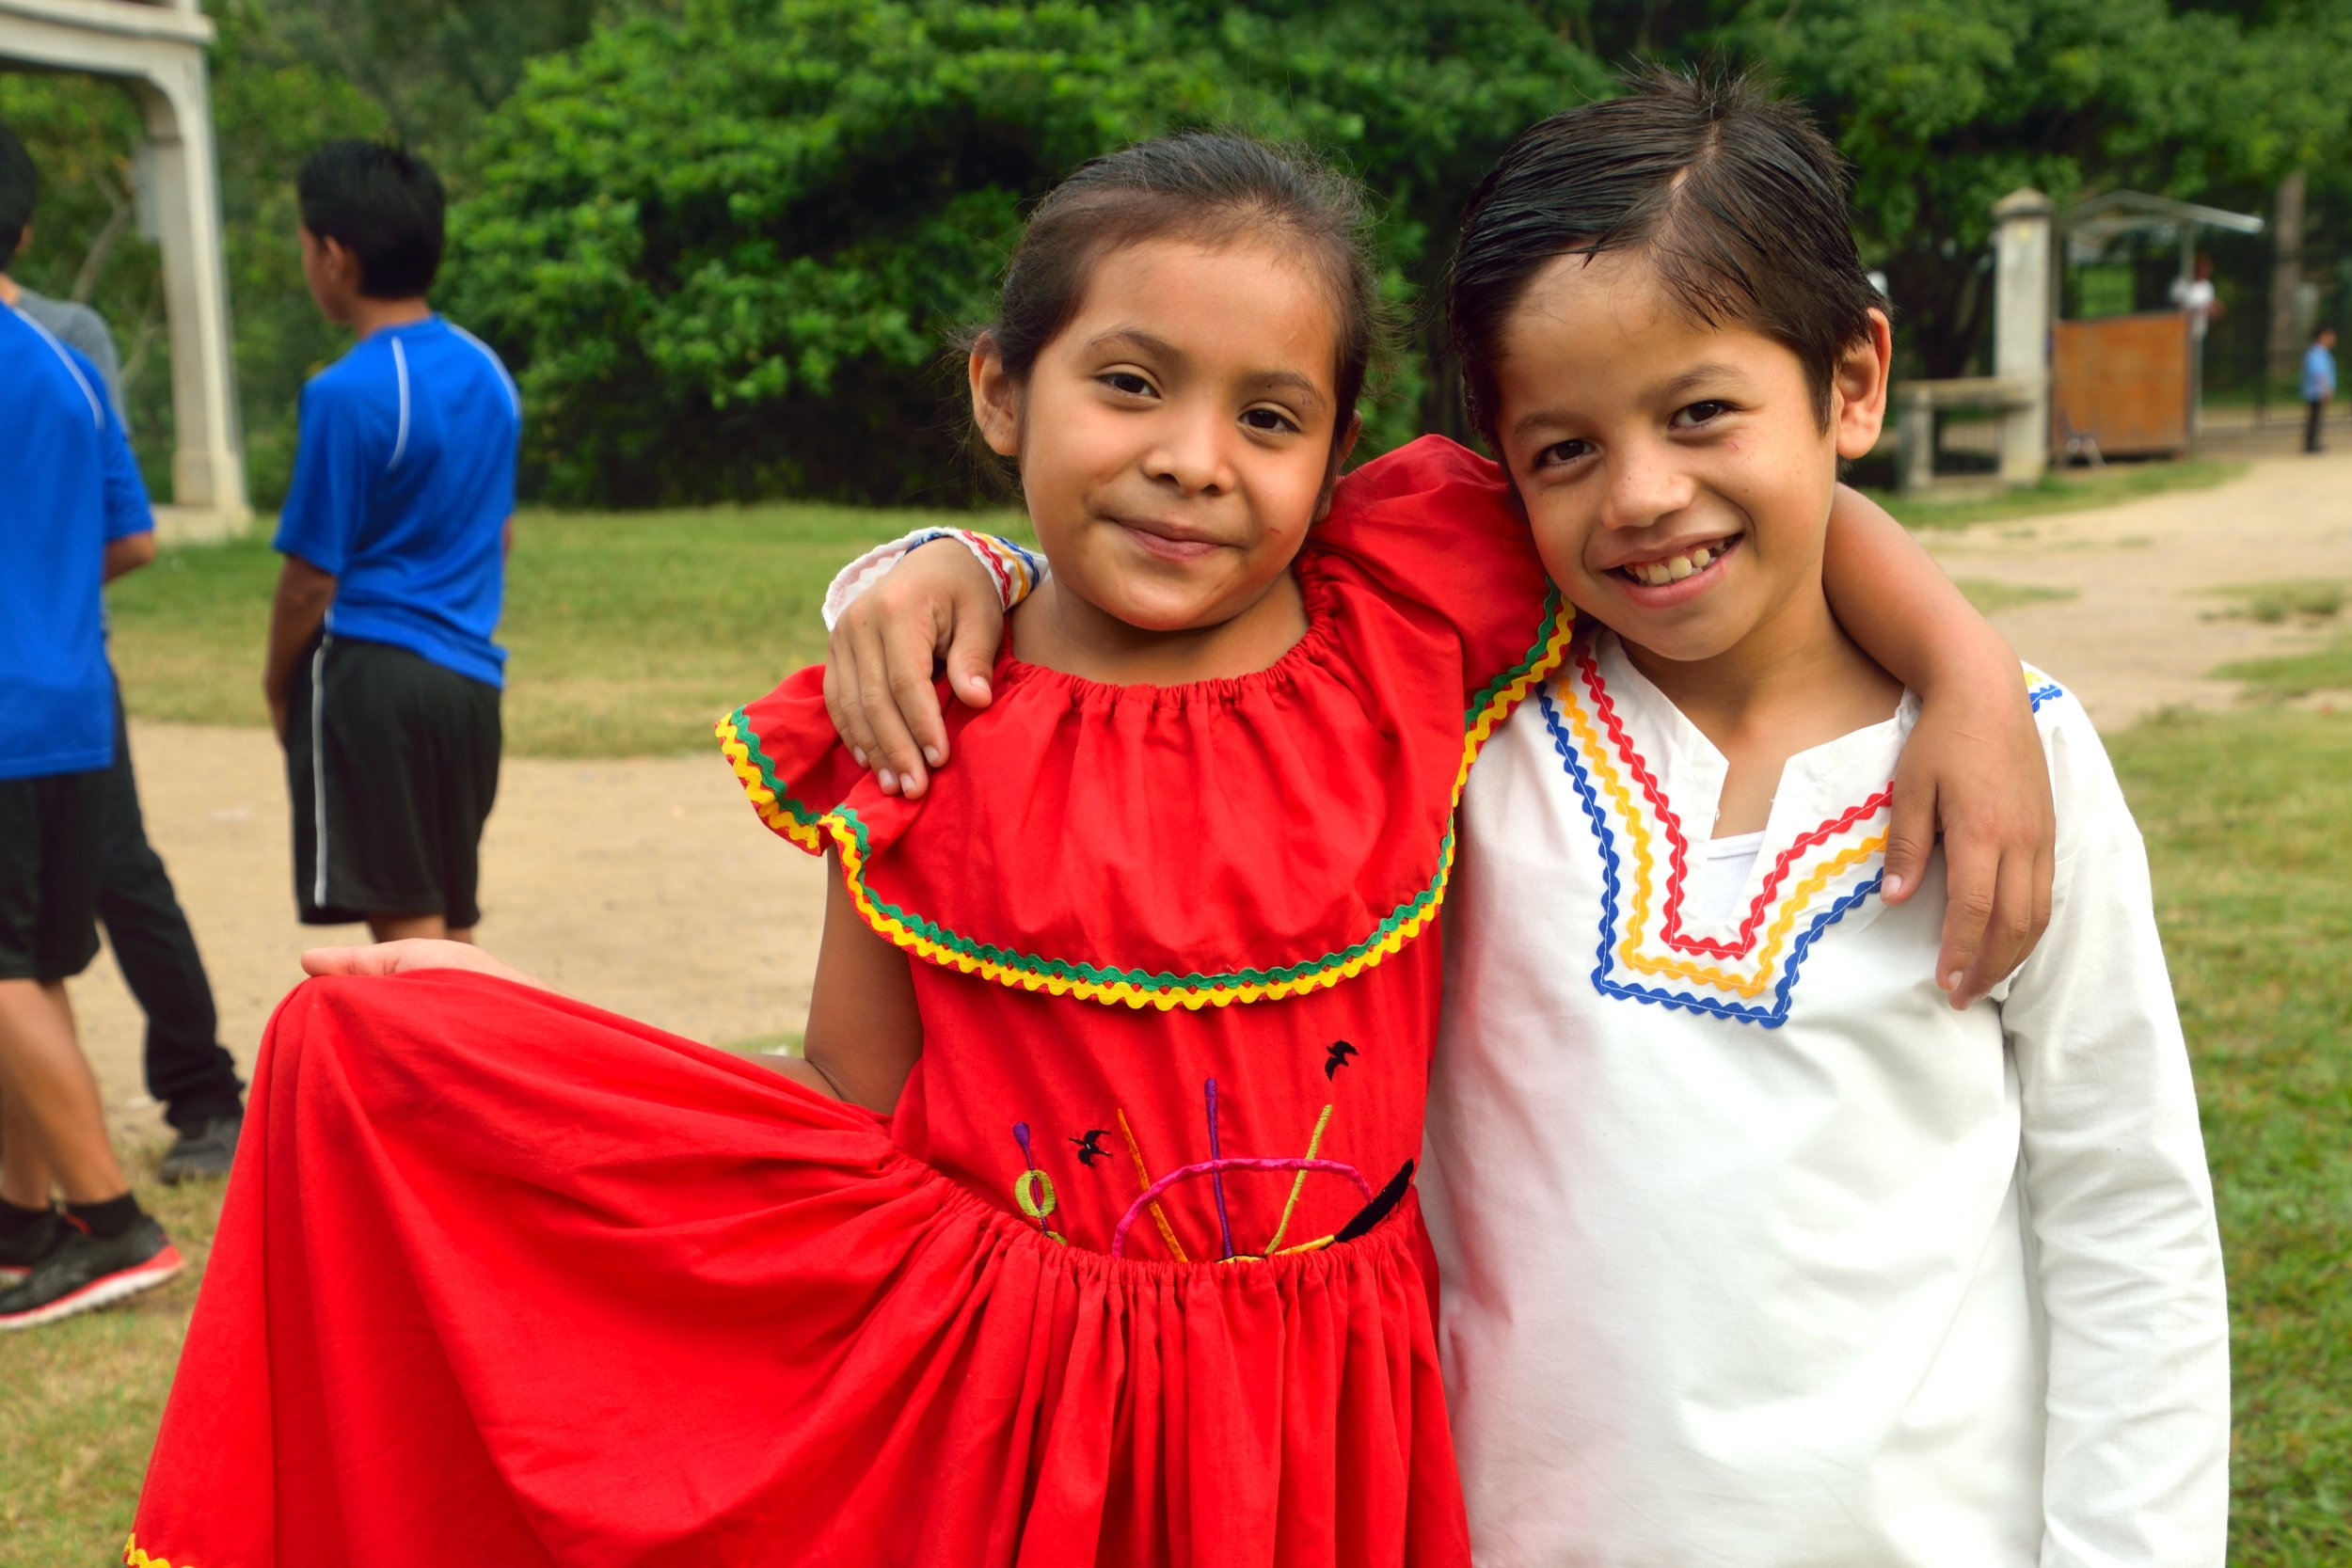 Sara with a friend dressed up and preparing for the Honduran Independence Day Parade in September 2018.